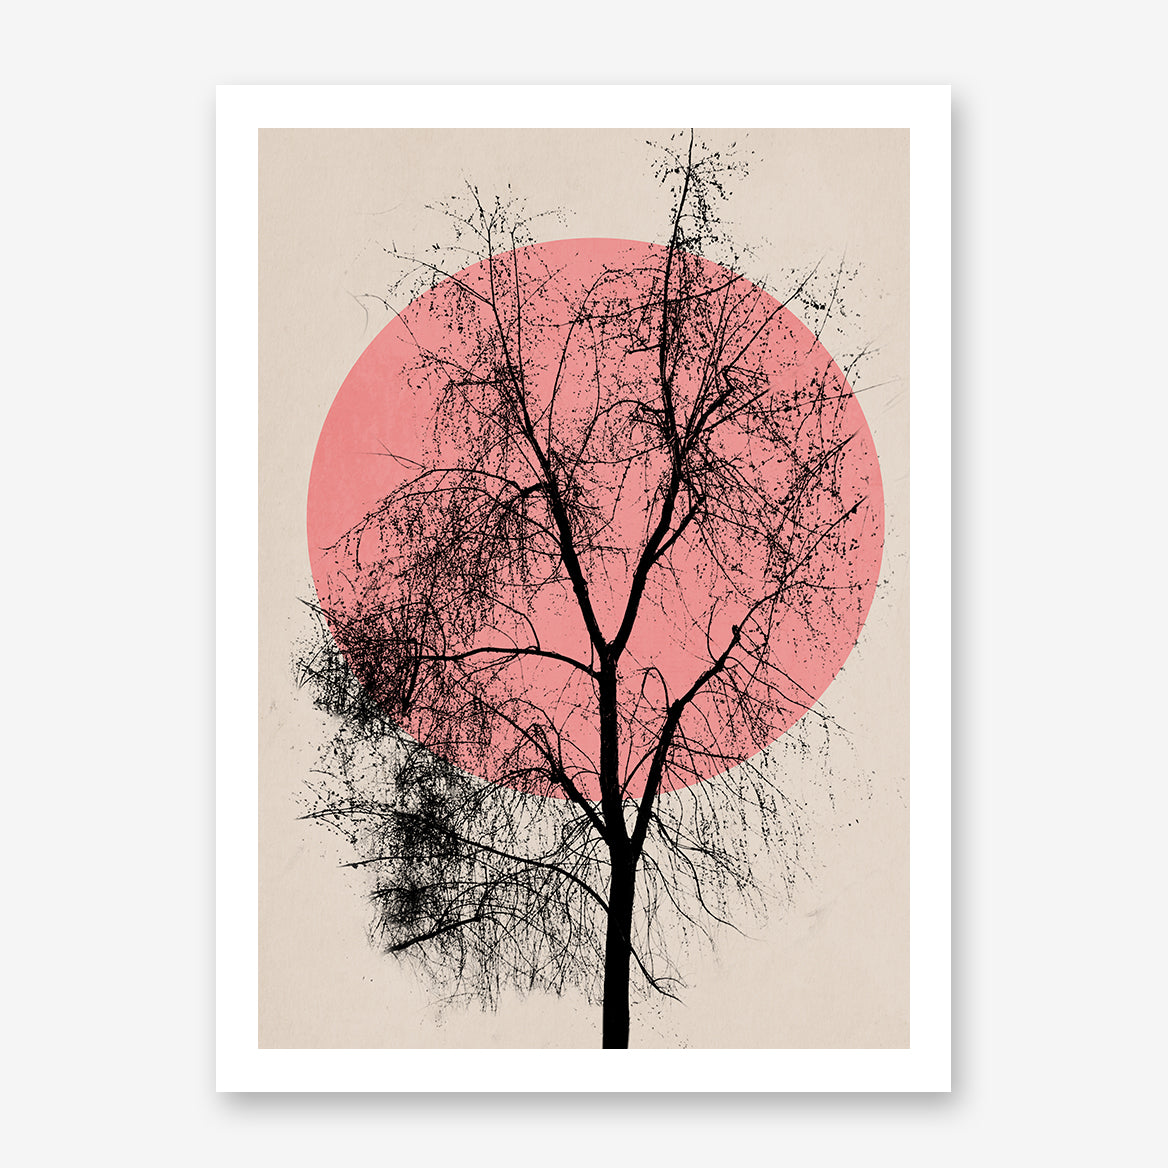 Poster print by Kubistika, with pink sun and large black tree, on beige background.